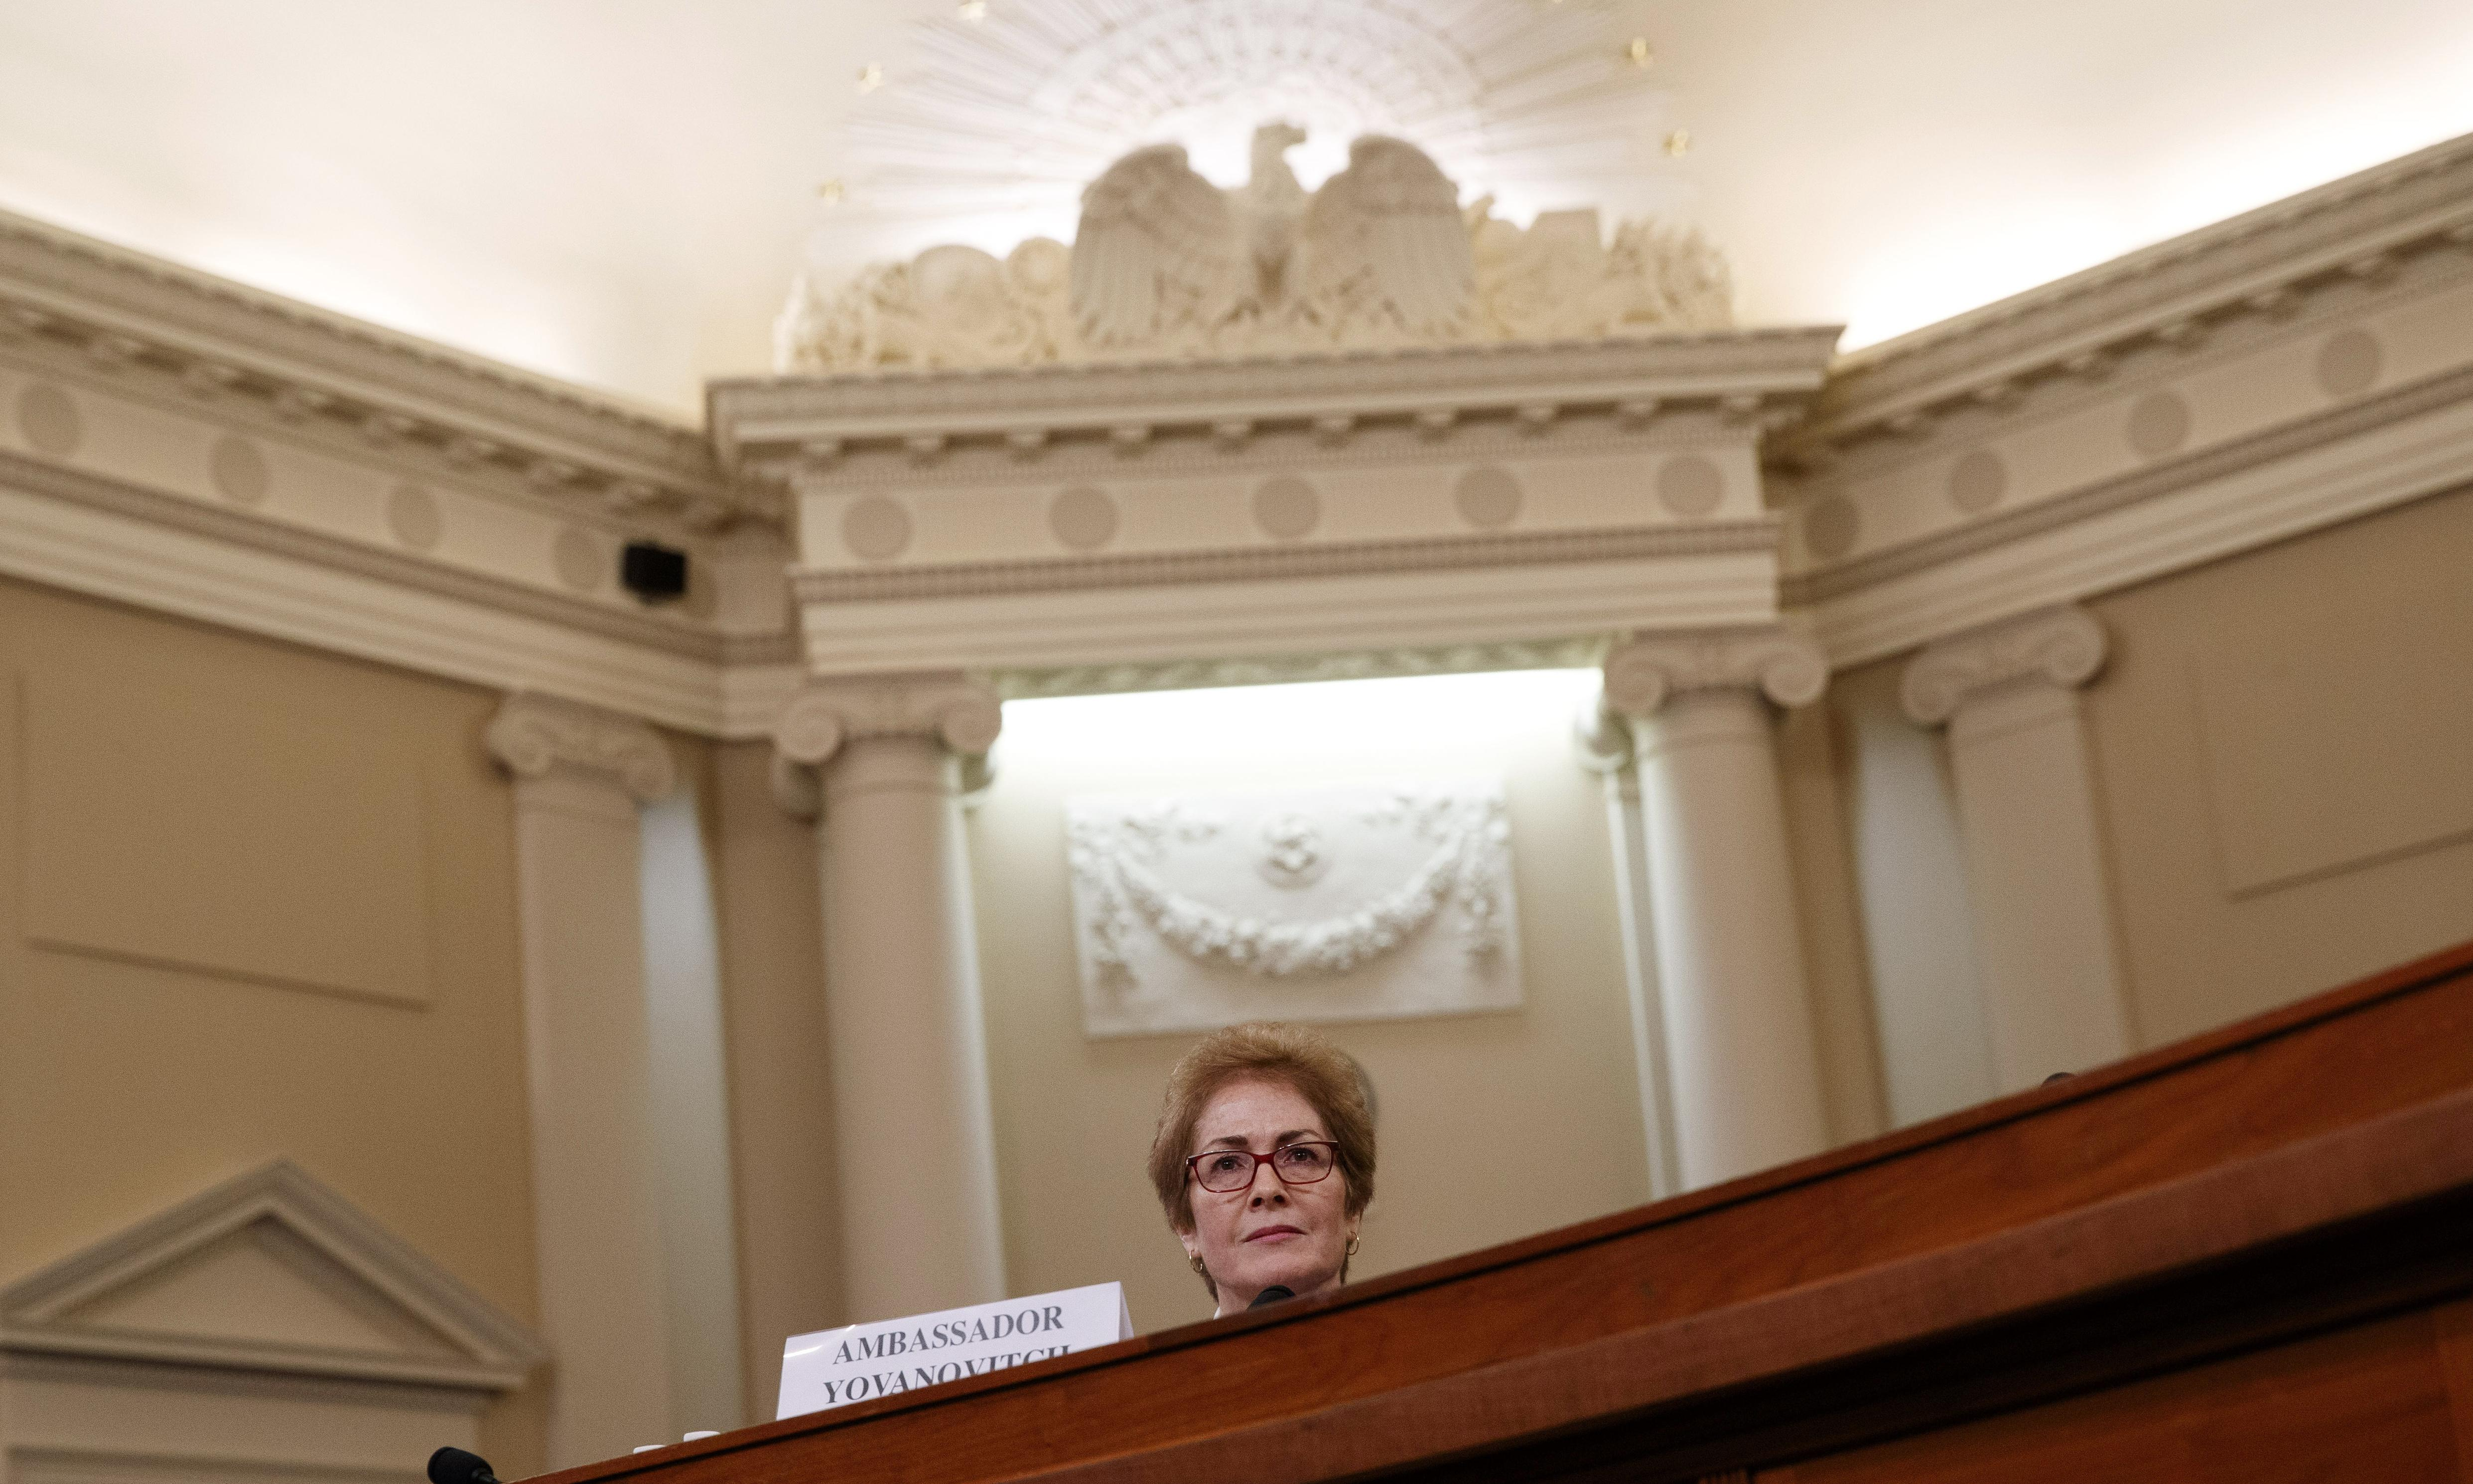 The impeachment hearings are a battle between oligarchy and democracy